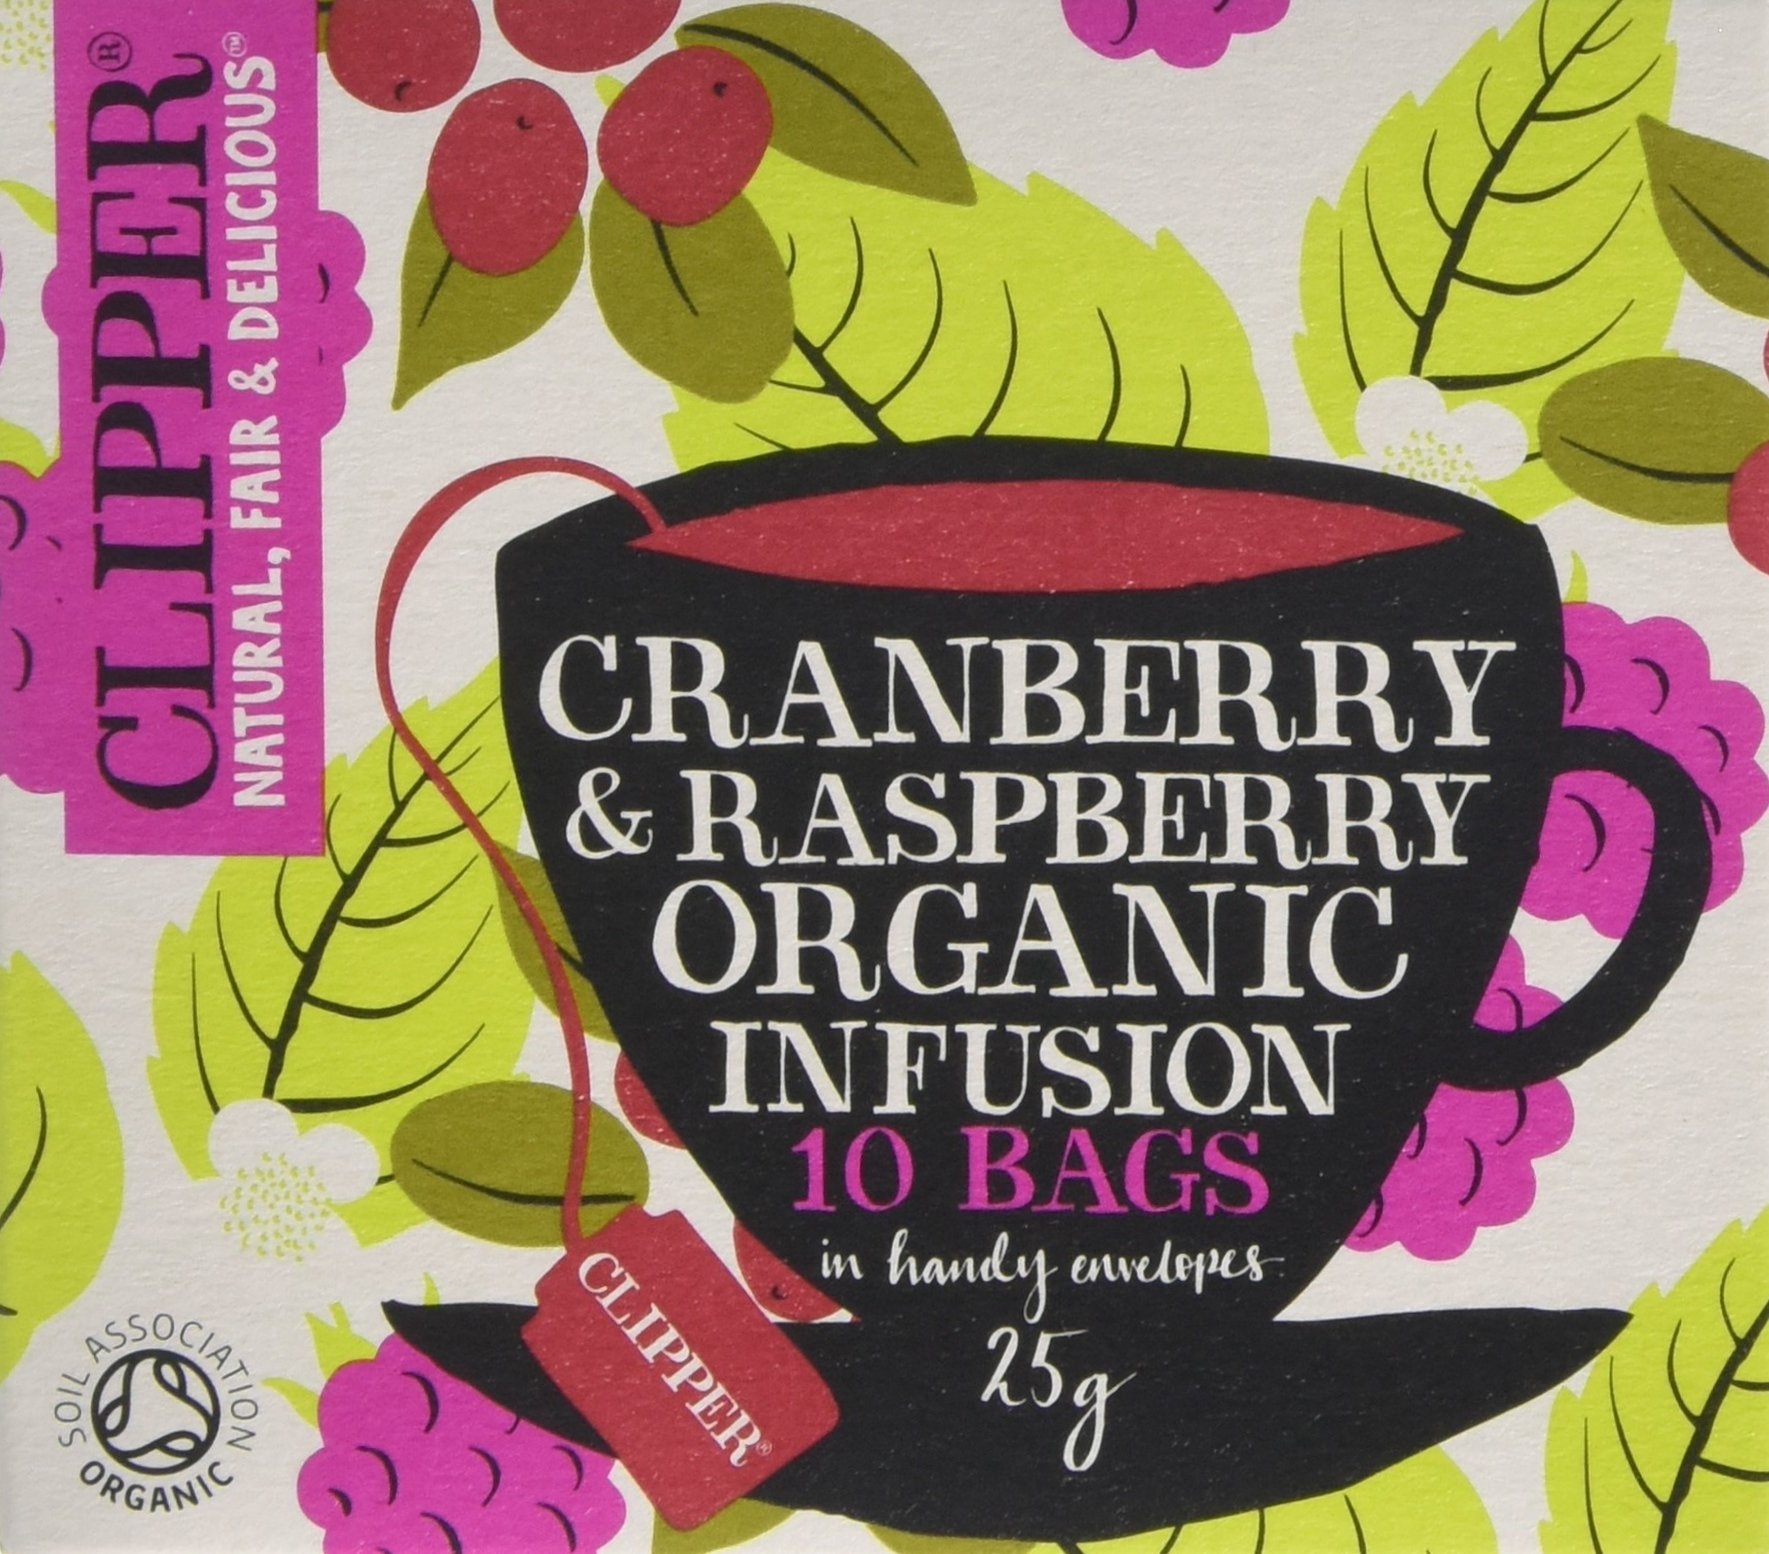 Clipper organic cranberry and raspberry tea bundle (soil association) (infusions) (6 packs of 10 bags) (60 bags) (a fruity tea with aromas of cranberry, raspberry) (brews in 3-5 minutes)